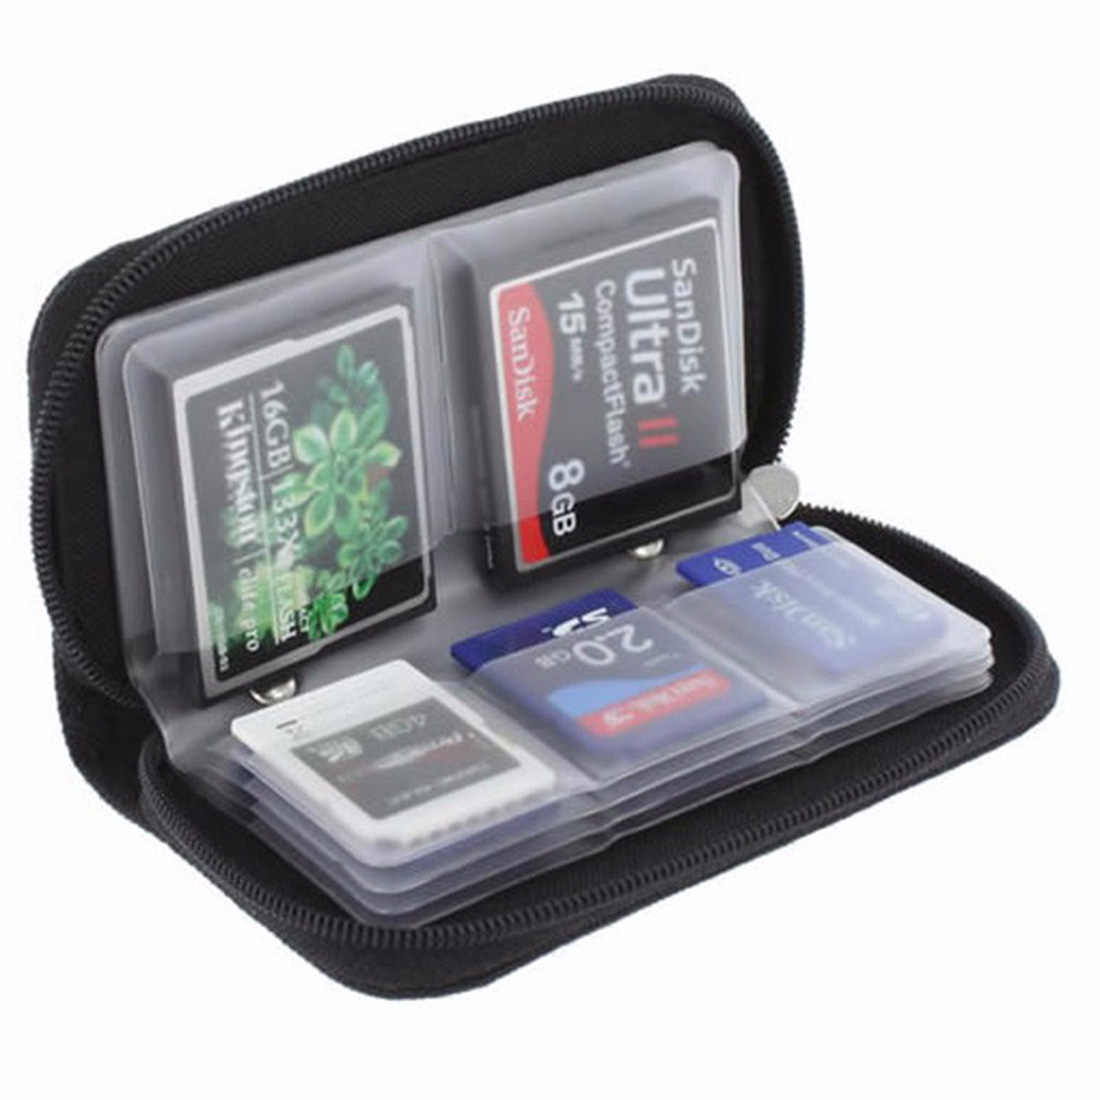 HC MMC CF 22 Cards Slot For Micro SD Memory Card Storage Carrying Pouch bag Box Case Holder Protector Wallet